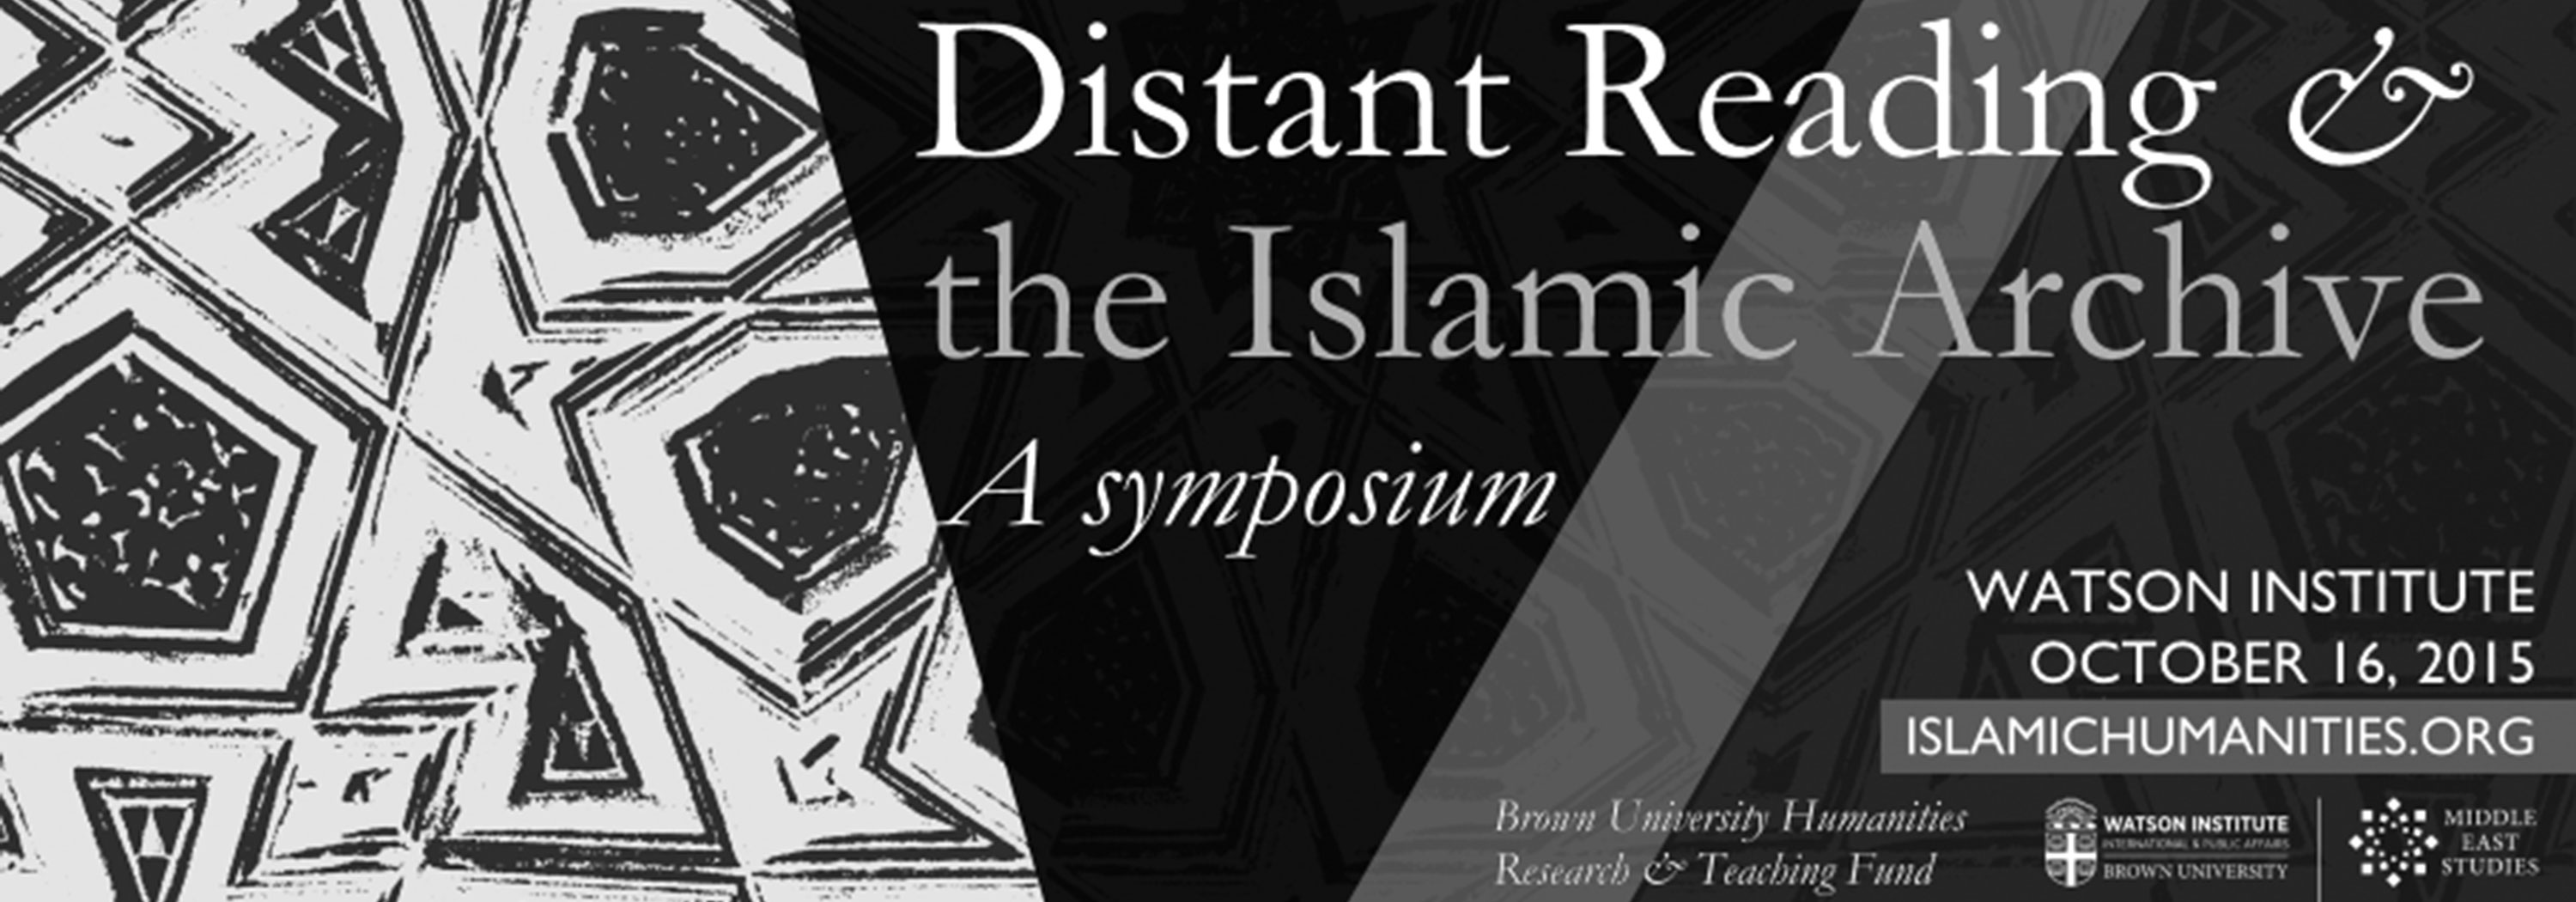 Distant Reading & the Islamic Archive